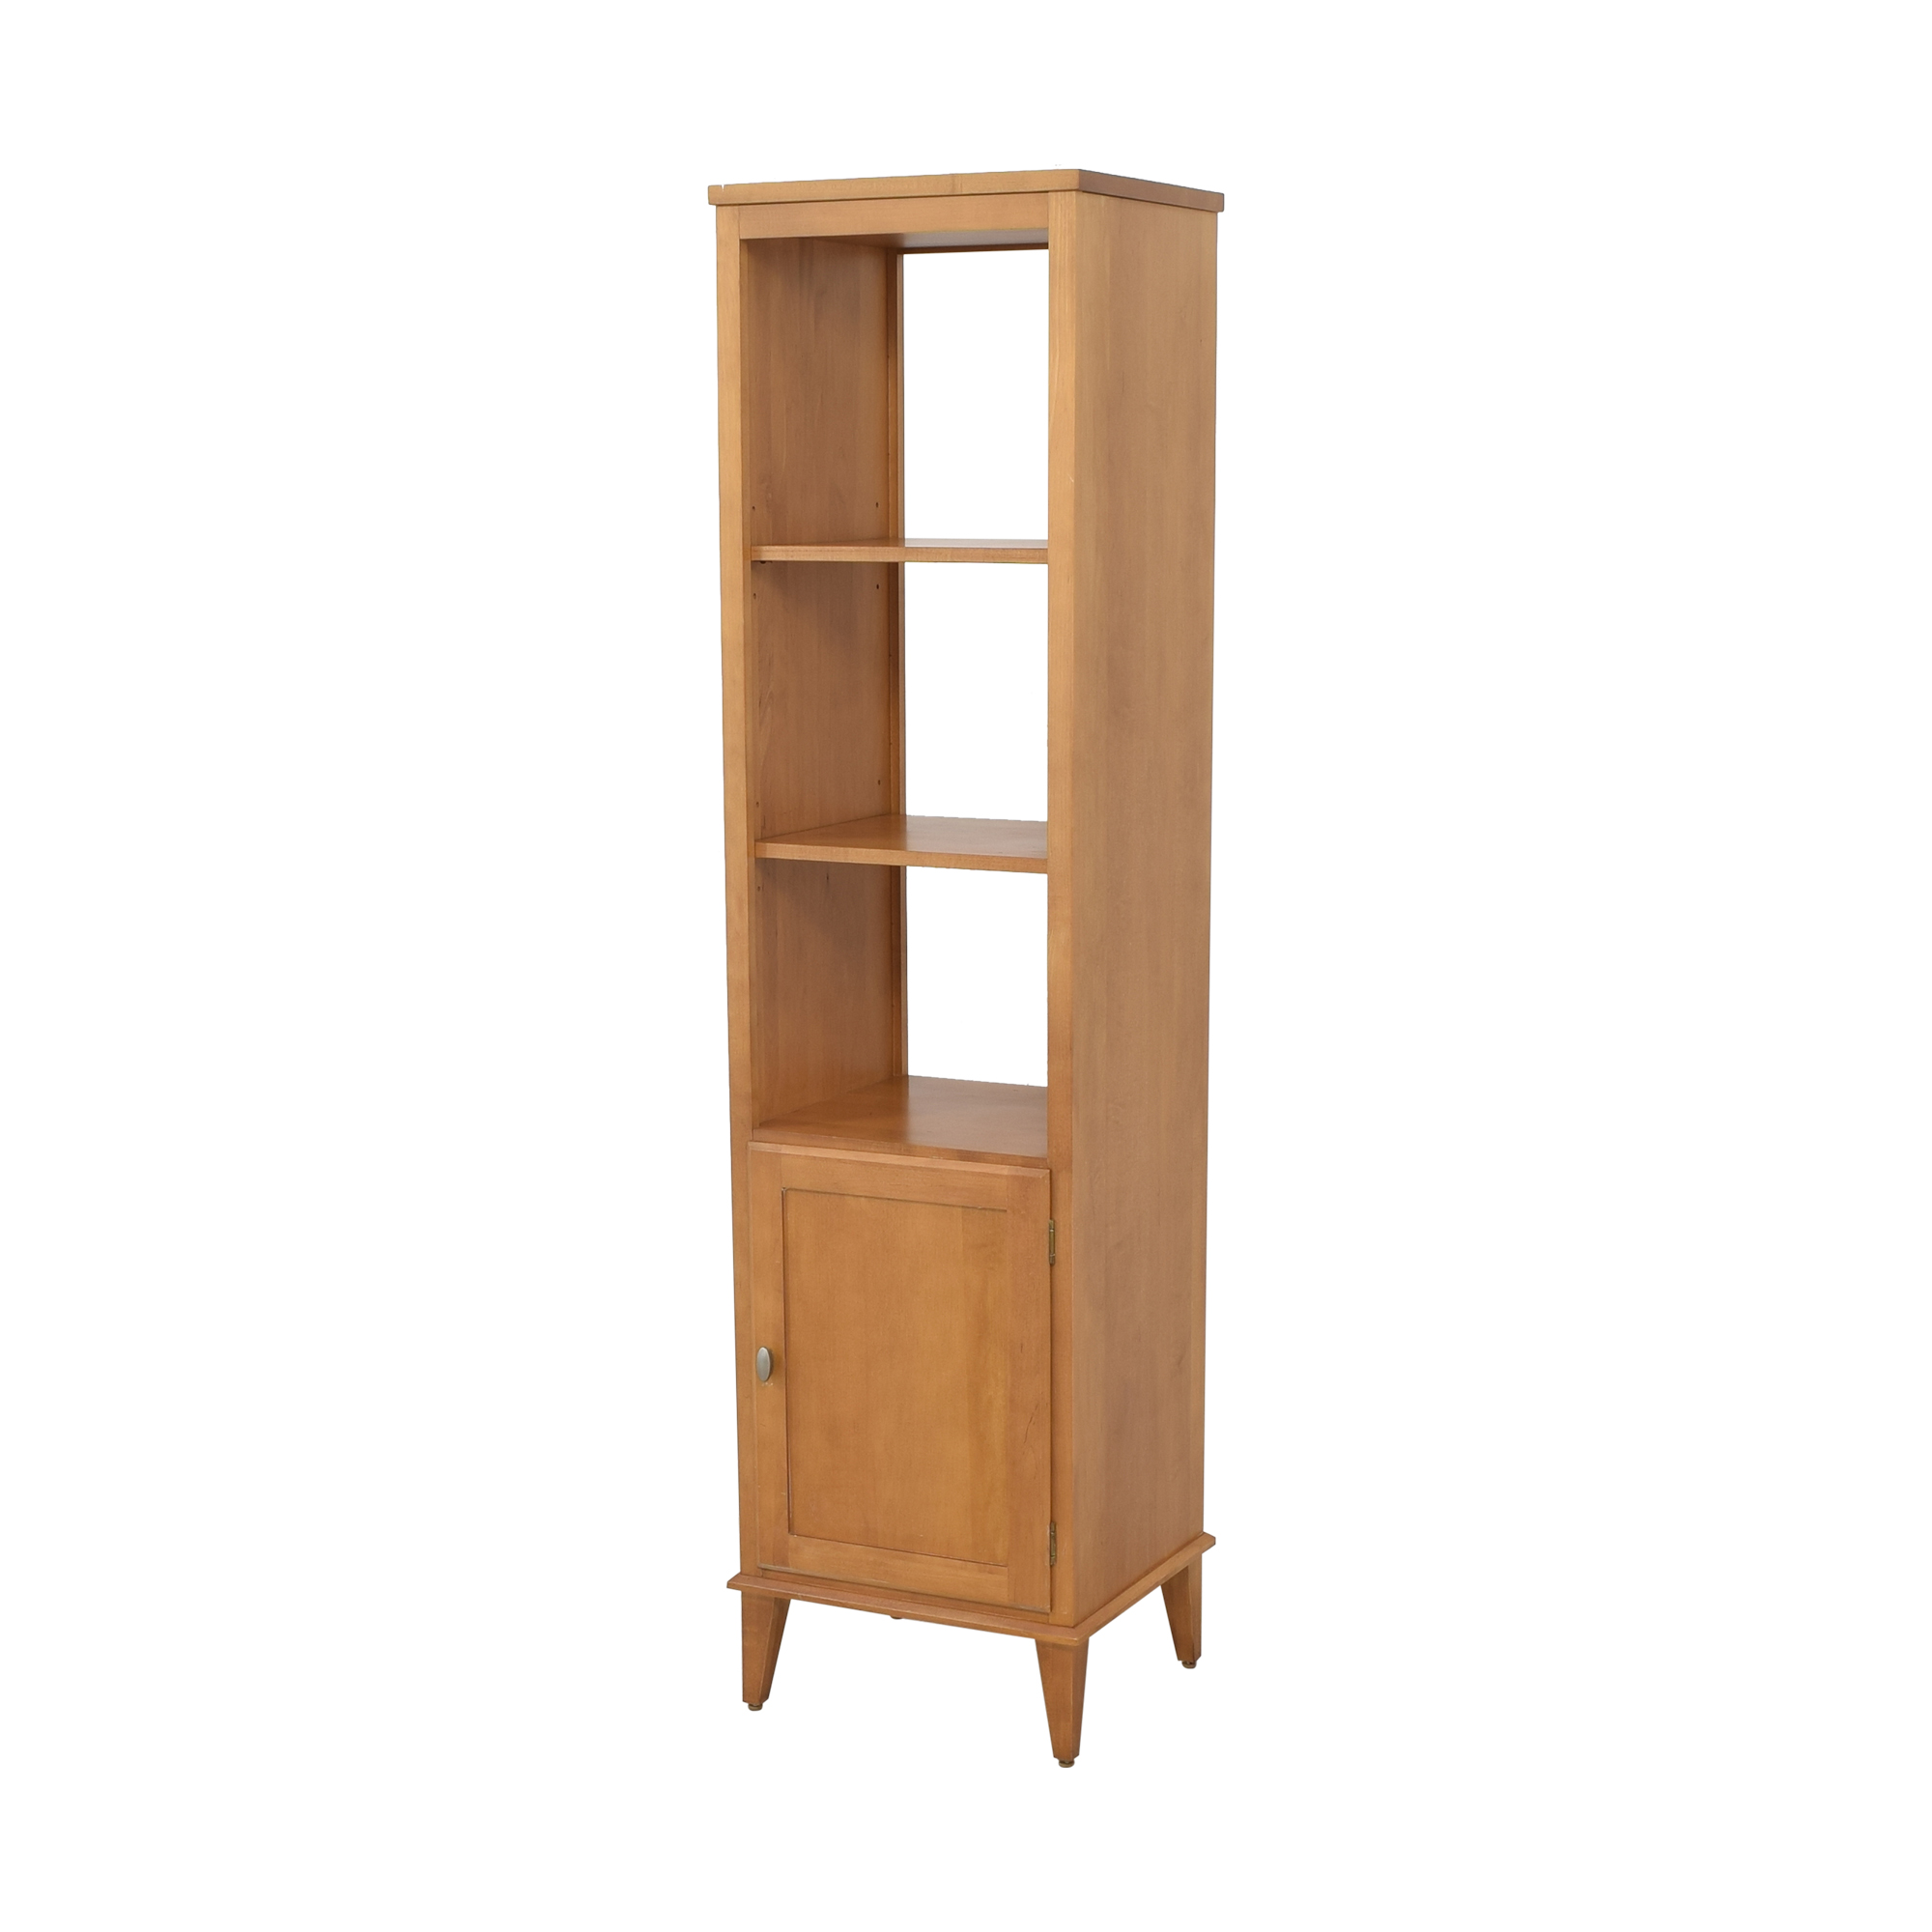 Ethan Allen Ethan Allen Elements Bookcase nj